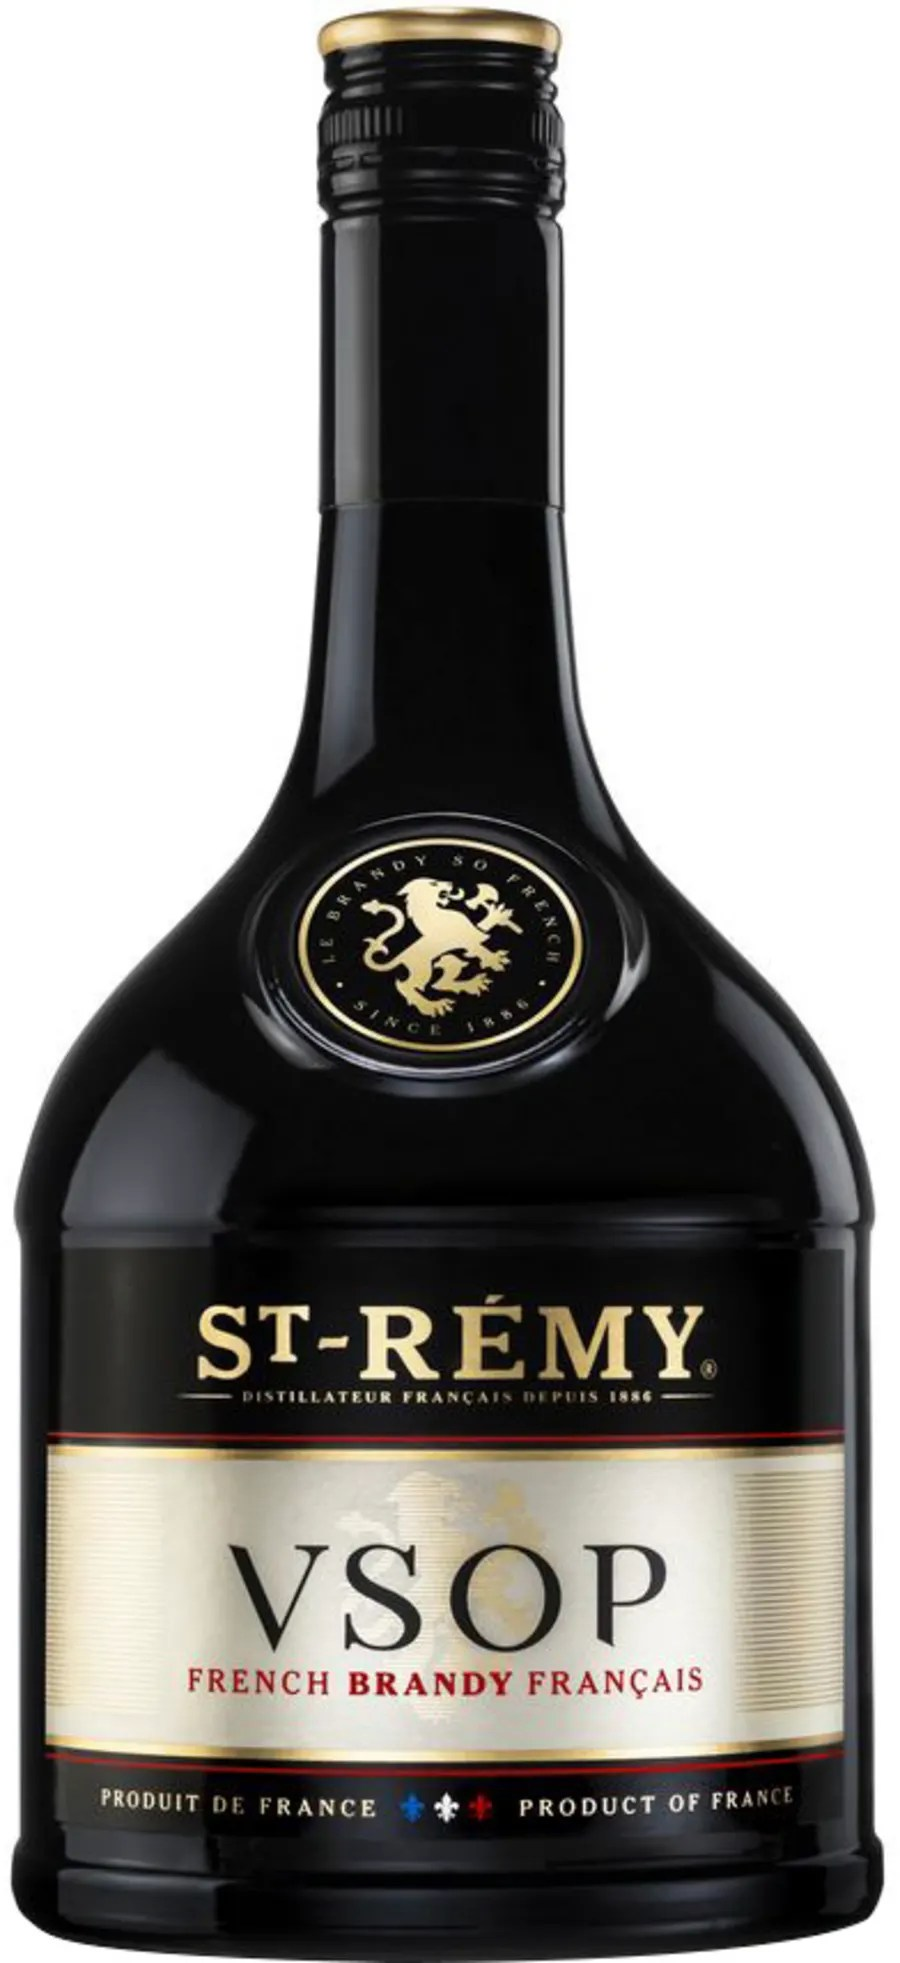 St Remy St Rémy Authentic Vsop